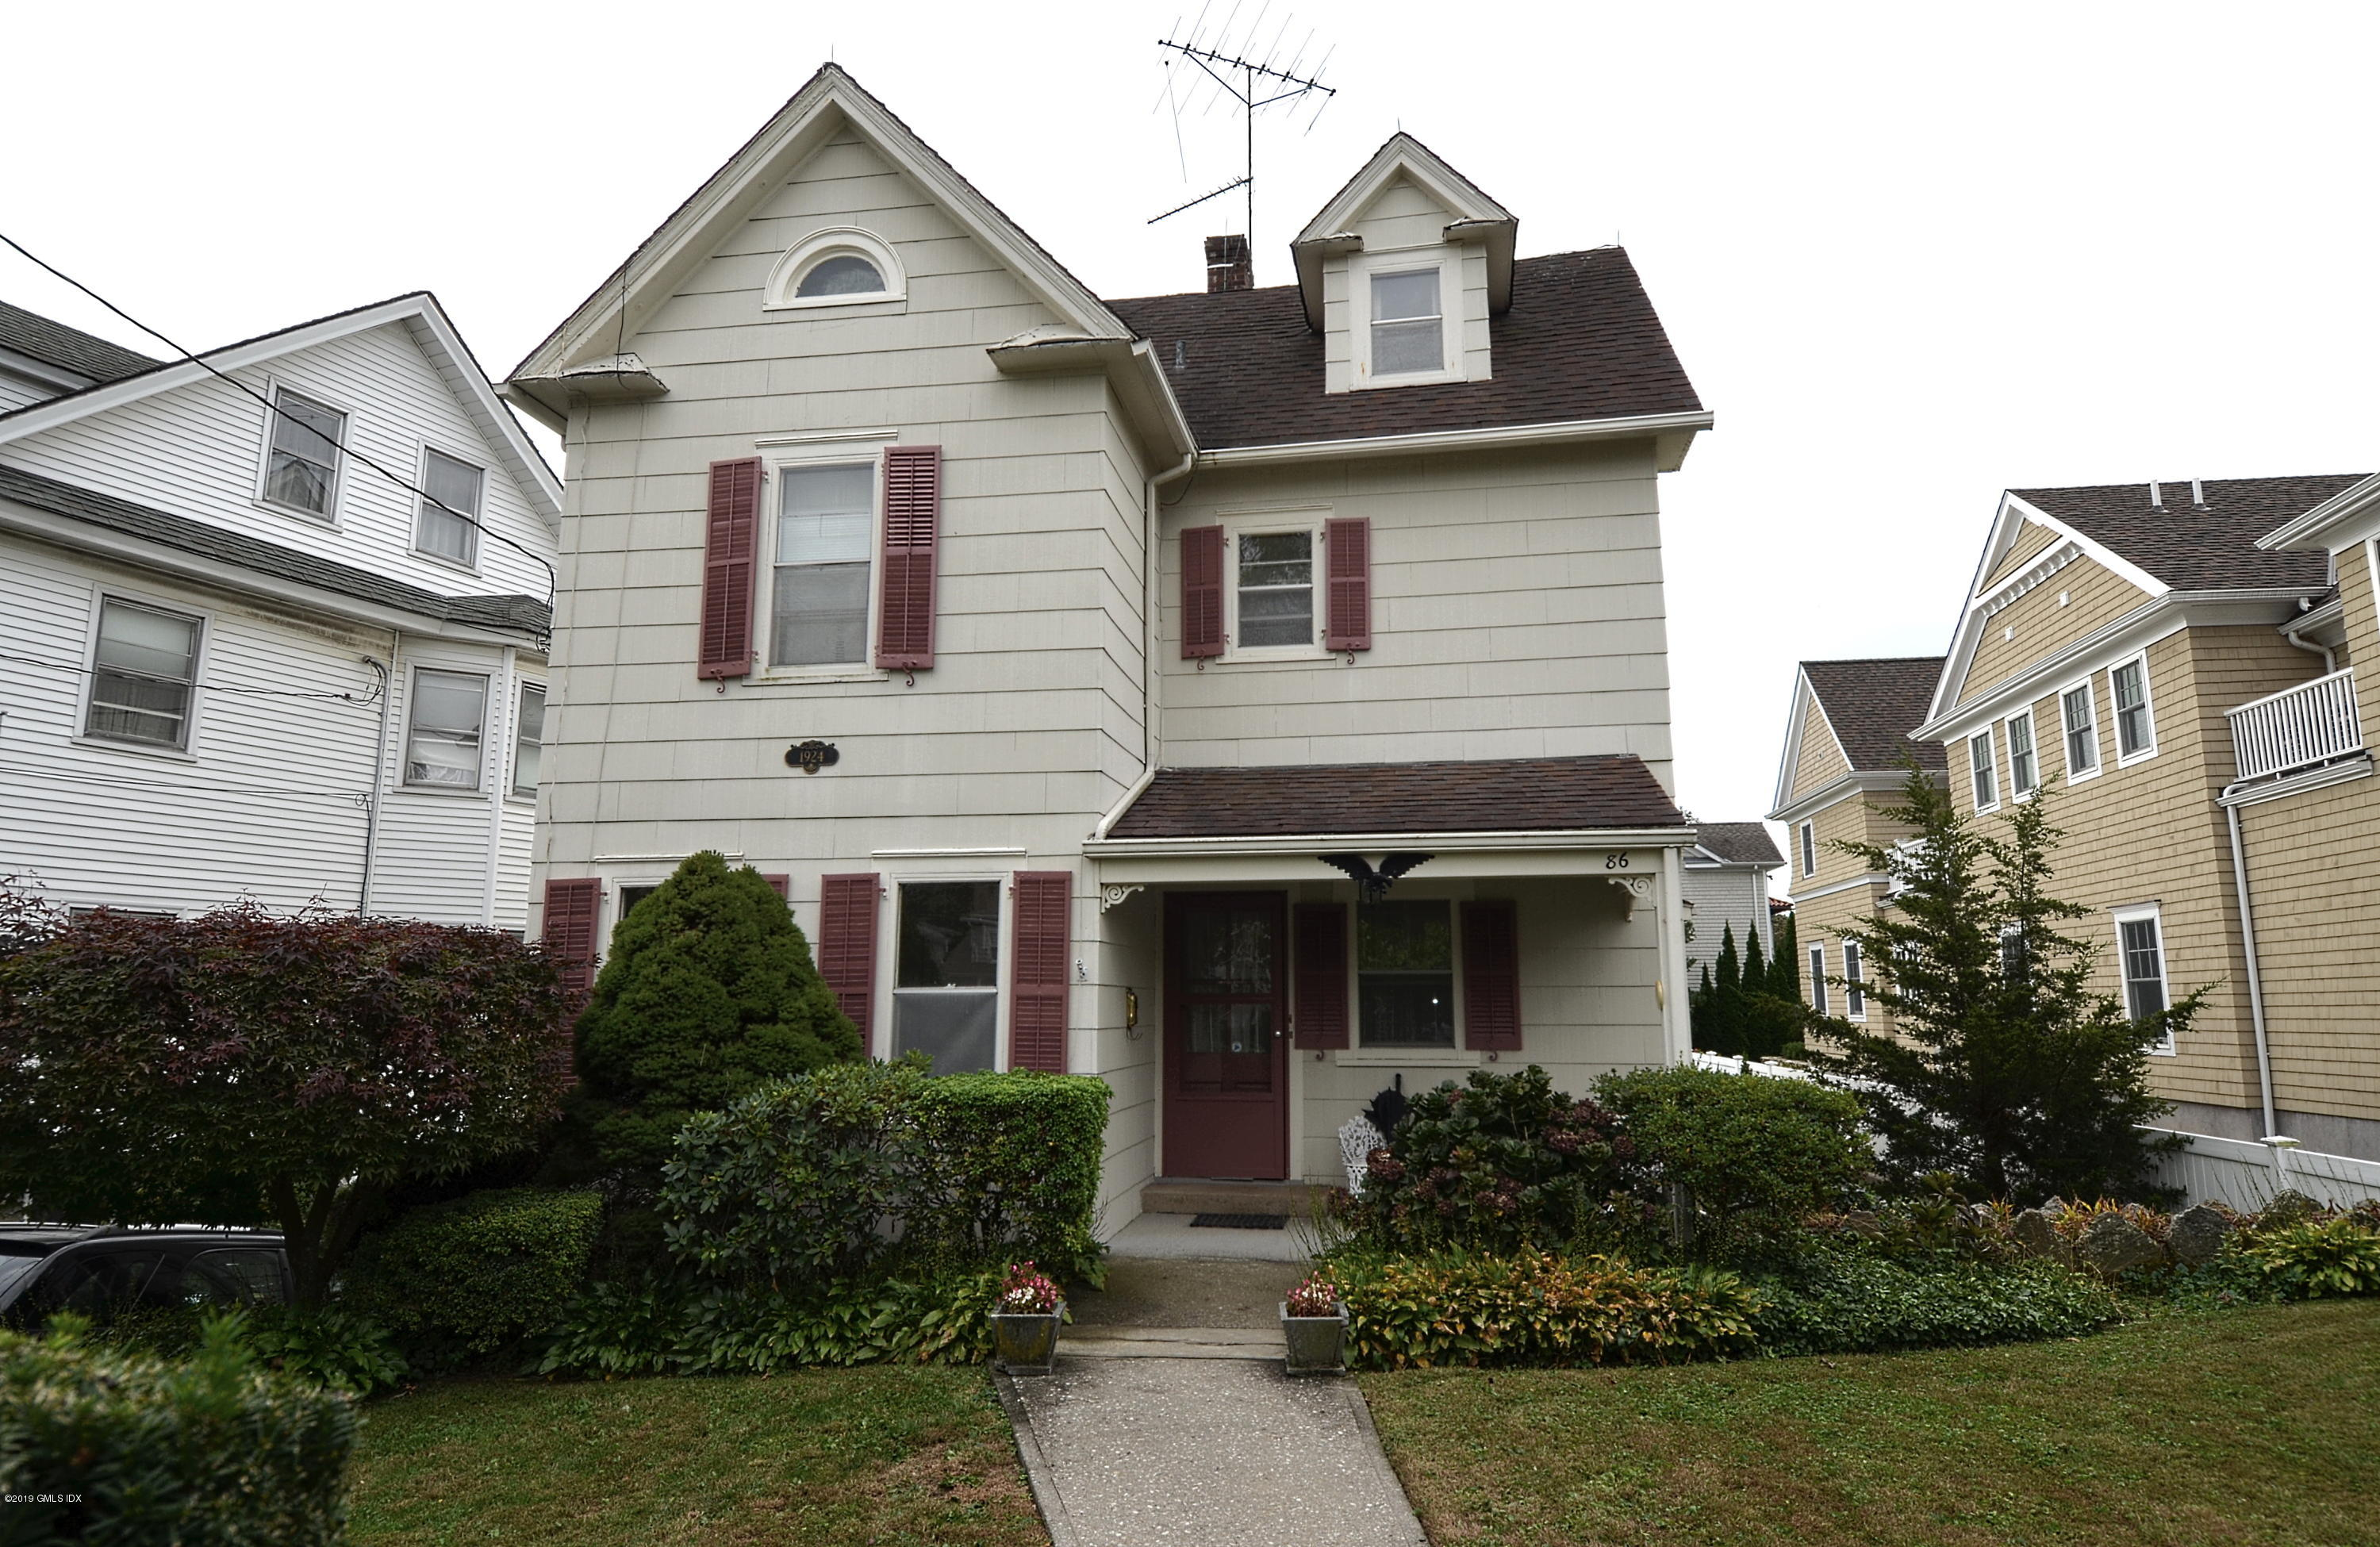 86 Havemeyer Place,Greenwich,Connecticut 06830,3 Bedrooms Bedrooms,1 BathroomBathrooms,Multi-family - 2 units,Havemeyer,108047